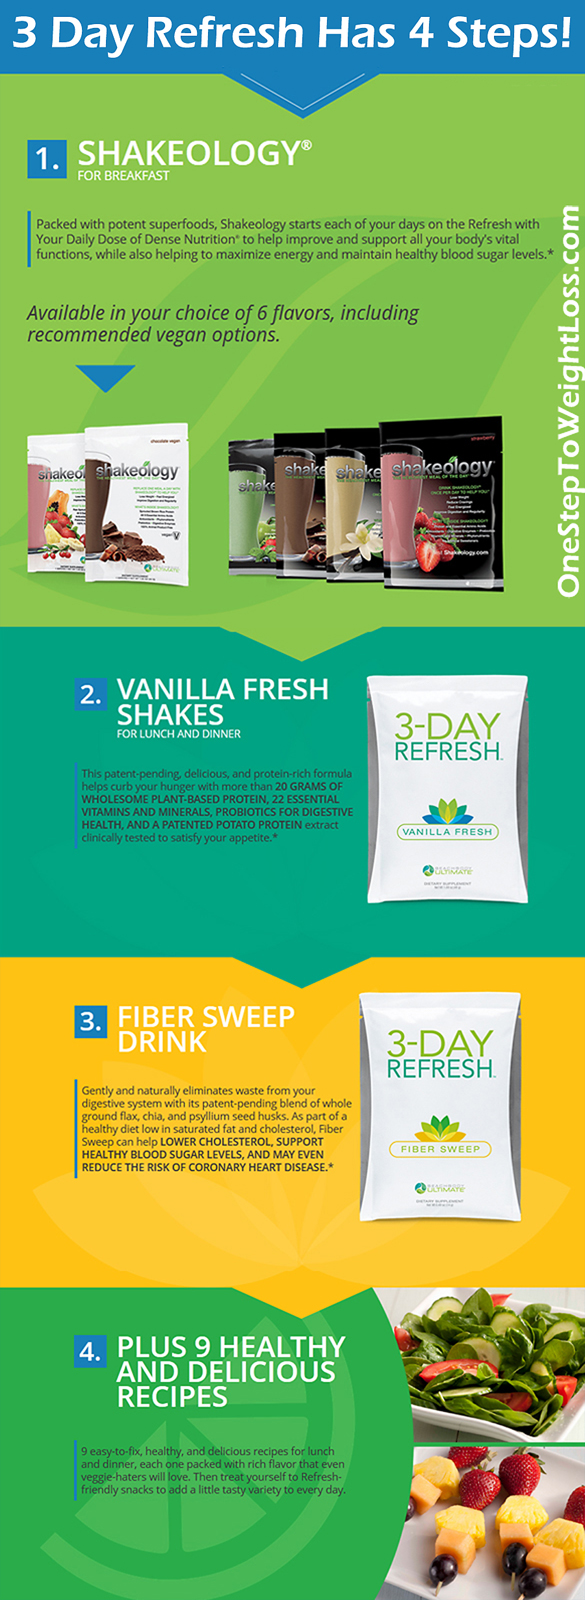 Beachbody 3 day Refresh Guide